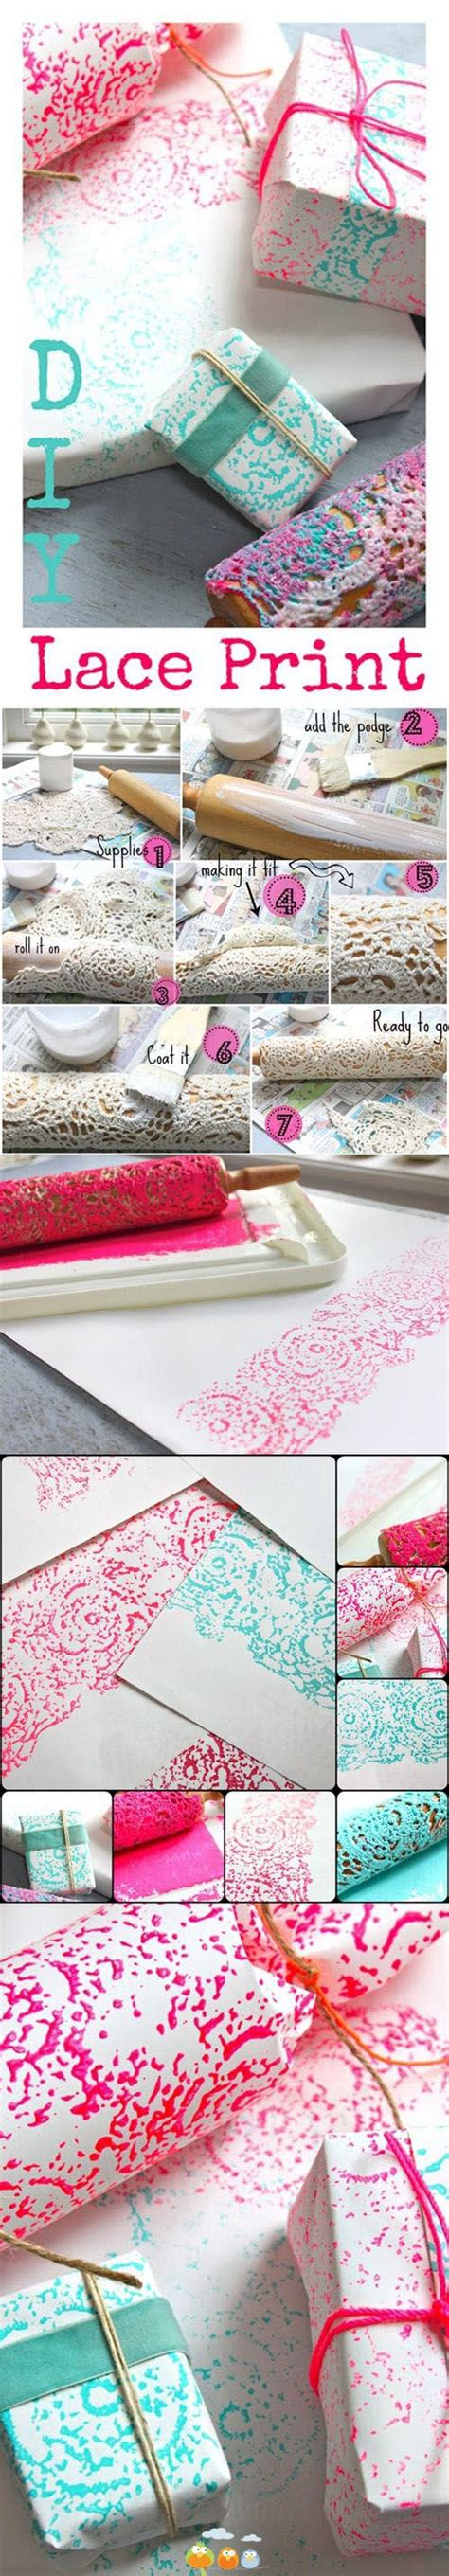 printable fabric sheets brisbane 144 best images about textile printing ideas on pinterest